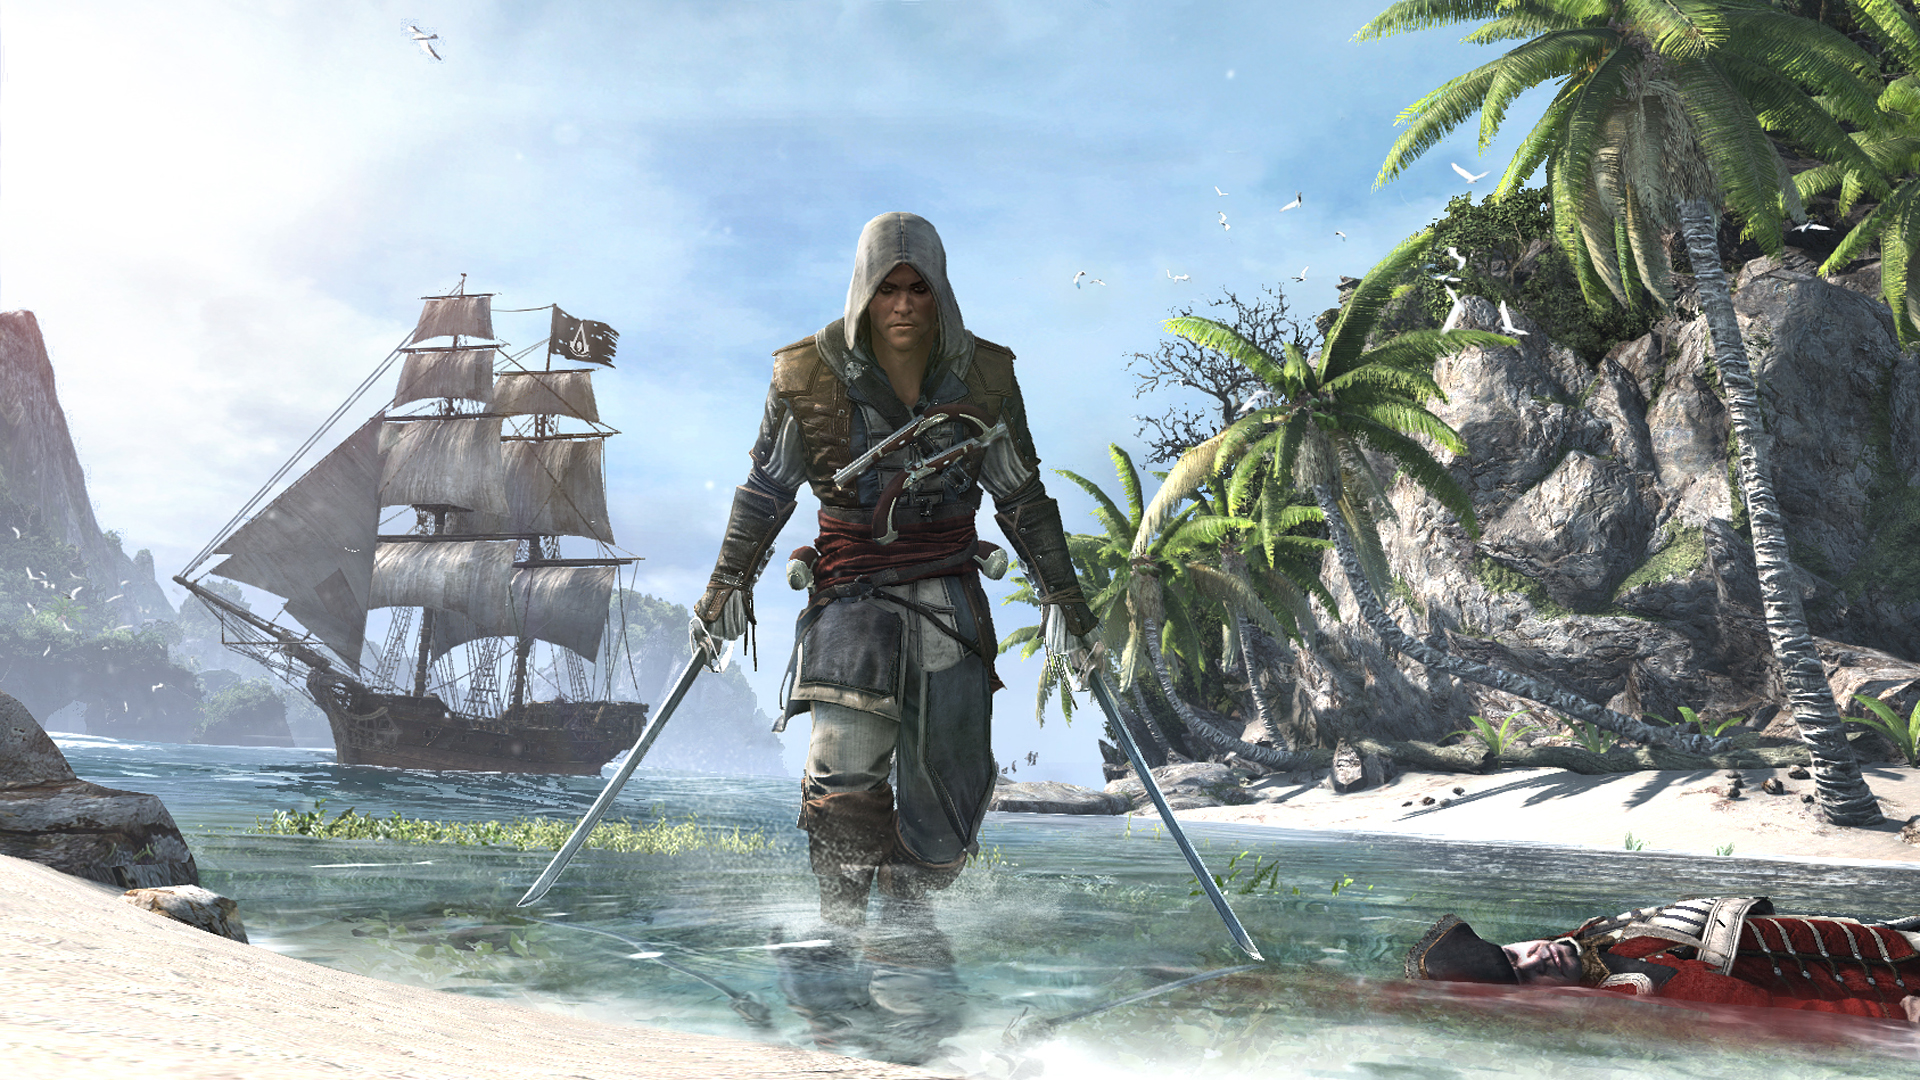 Assassin's Creed 4: Black Flag debut trailer sets sail, screens too